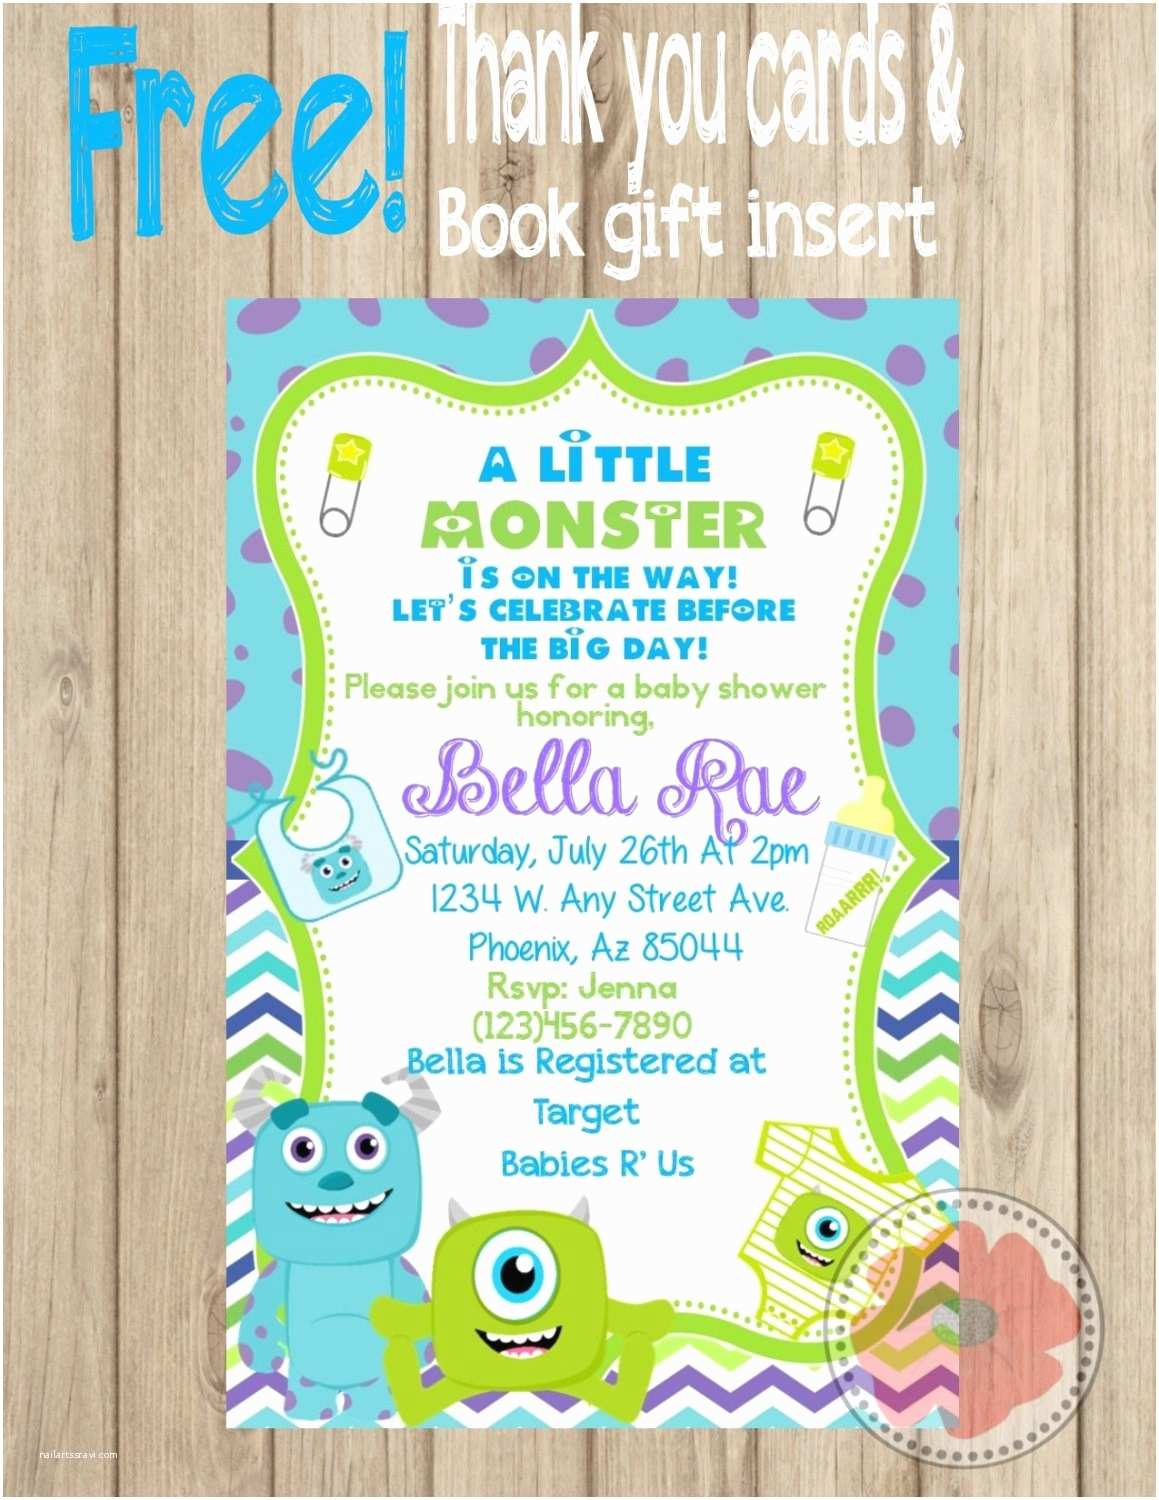 Diy Baby Shower Invitations Diy Baby Shower Invitation Image Collections Baby Shower